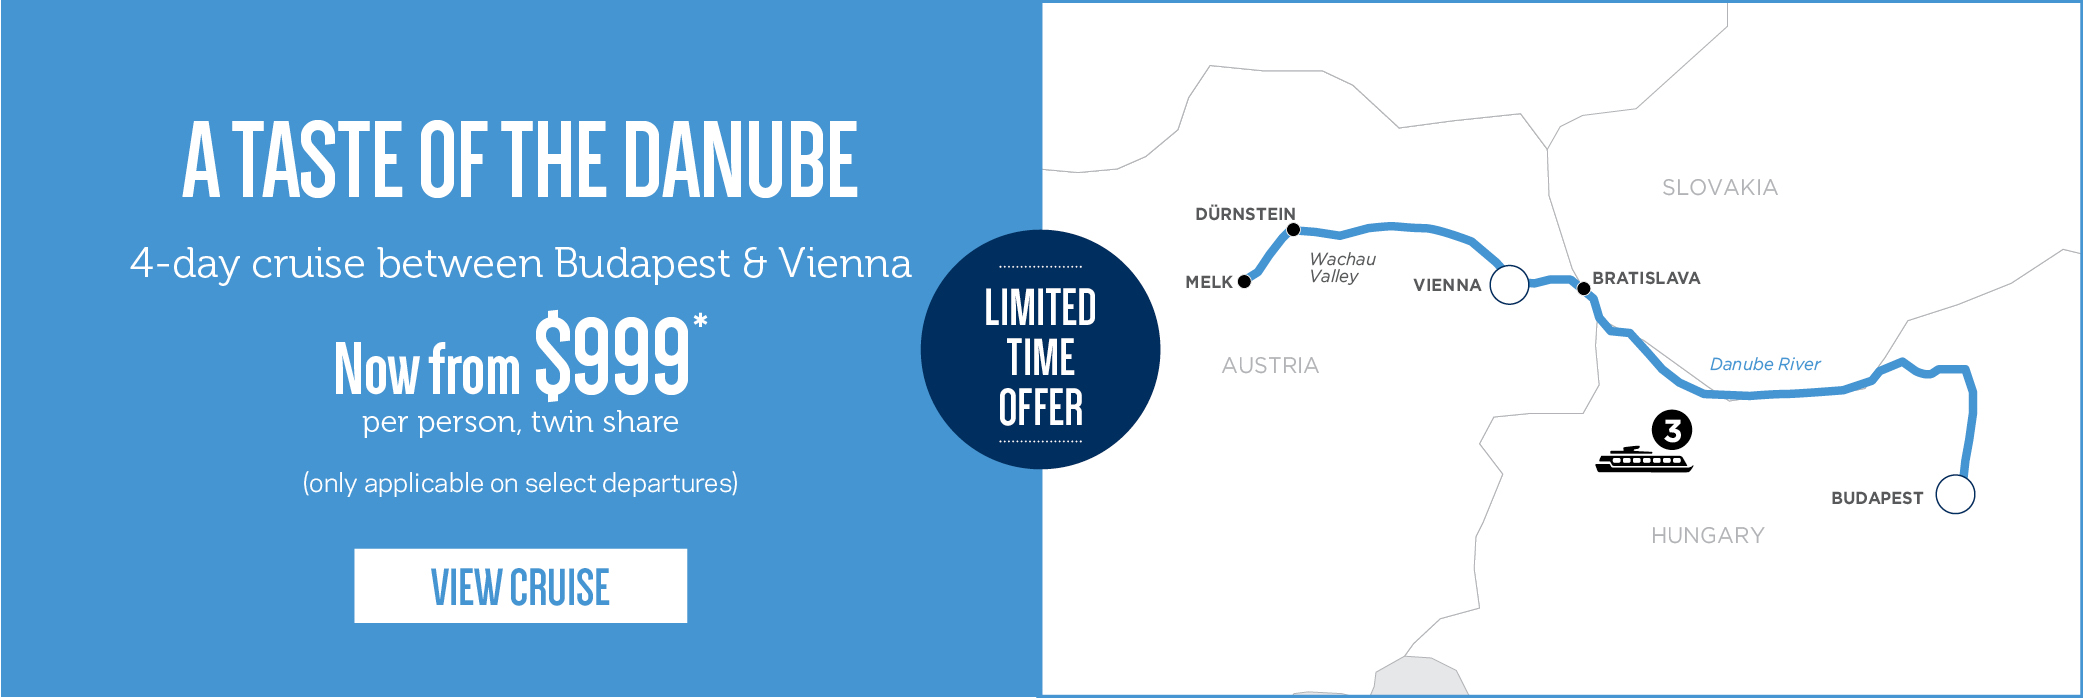 A Taste of the Danube for $999 pp